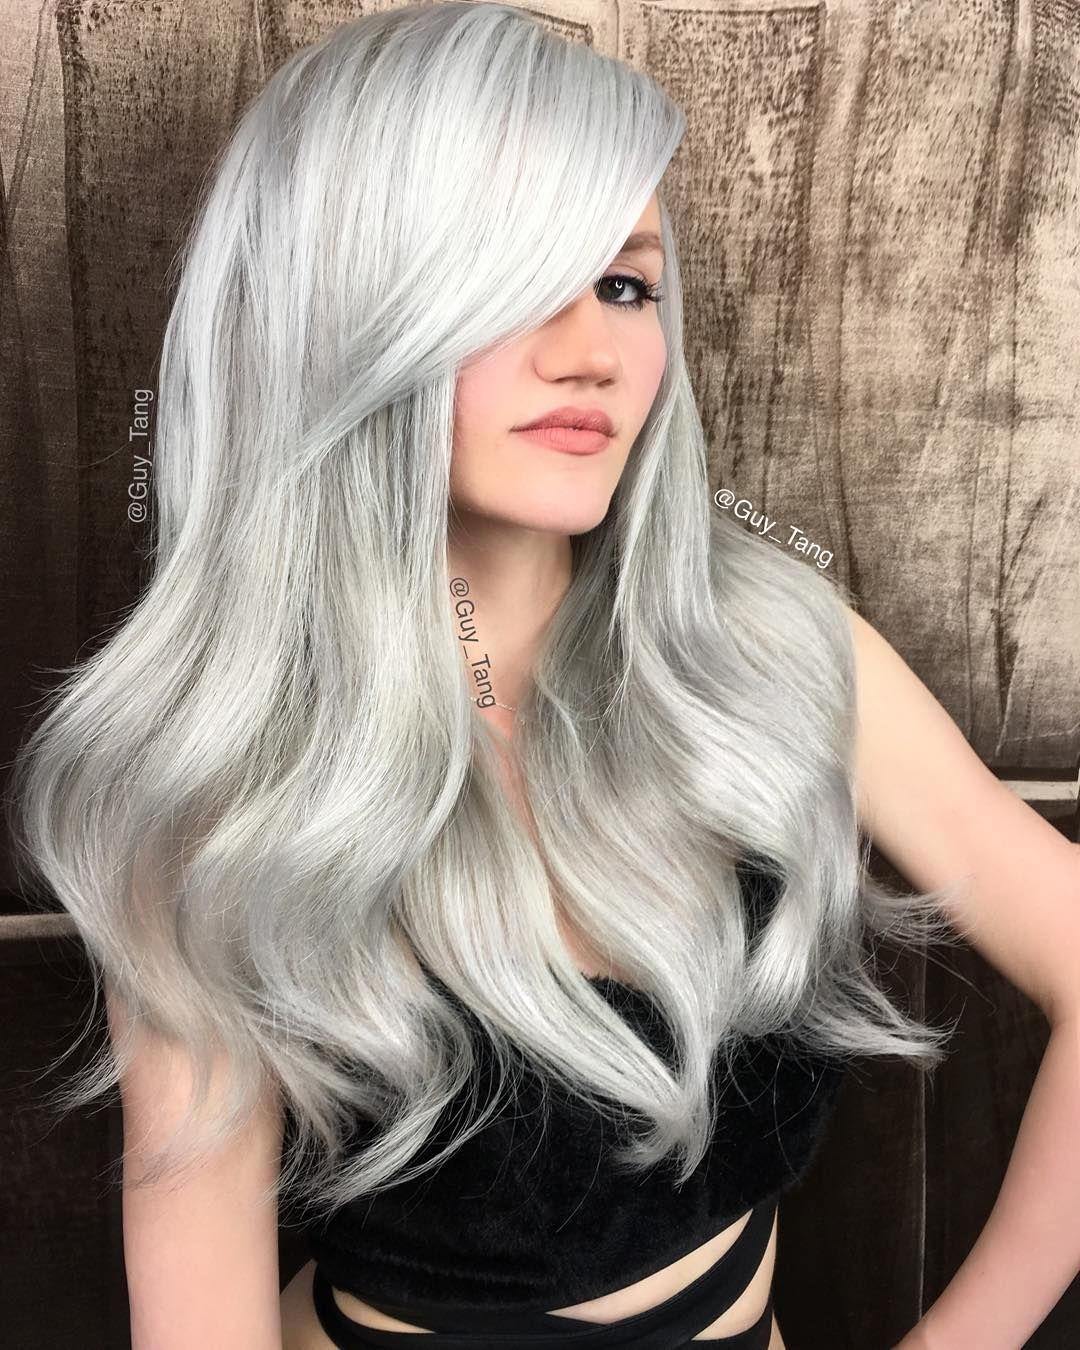 #metallicobsession kenra guy tang